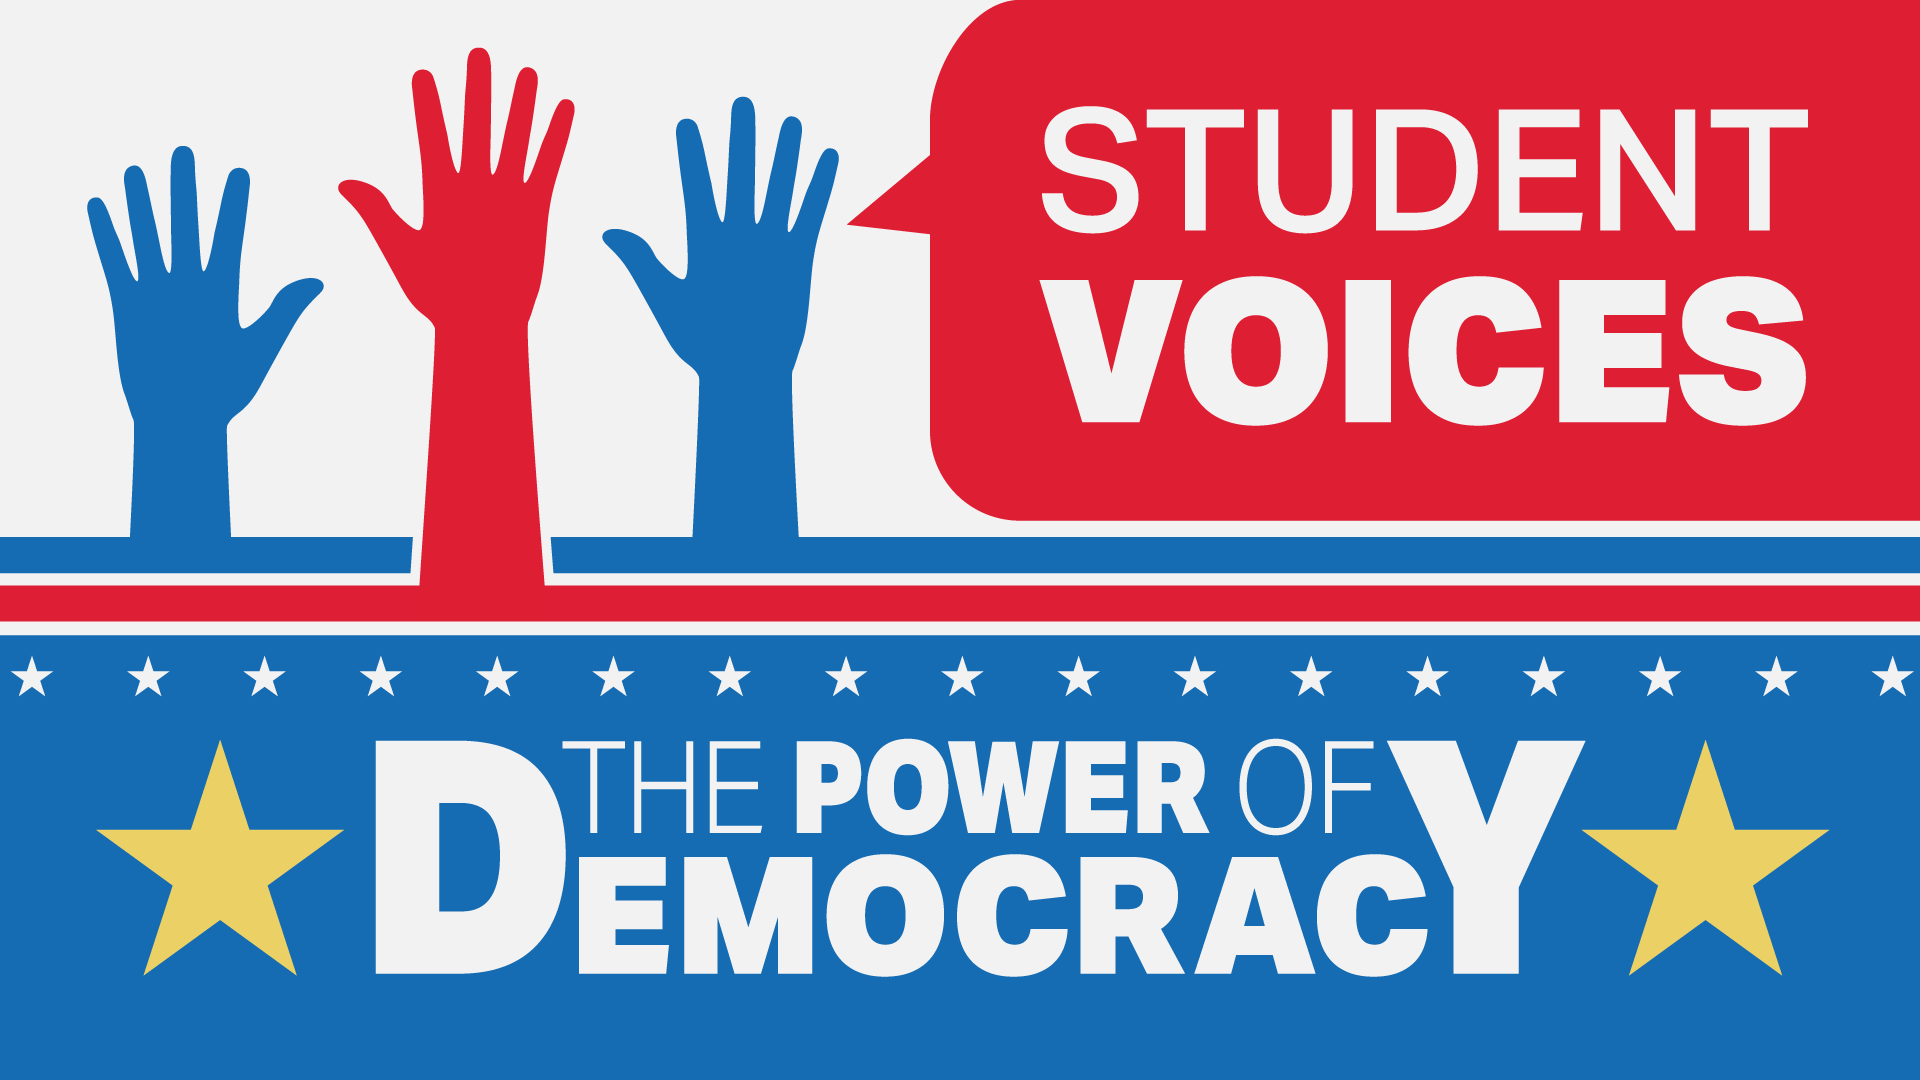 STUDENT VOICES: The Power of Democracy